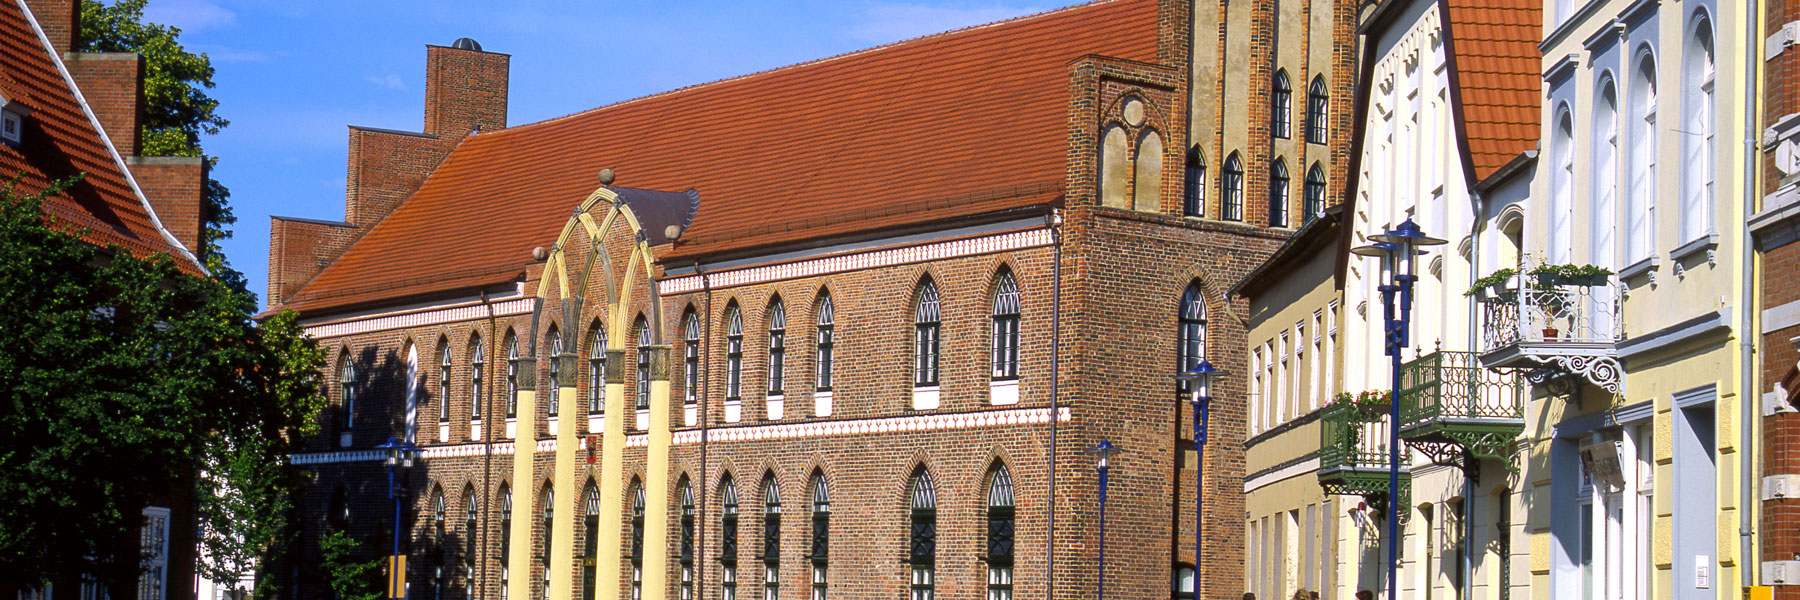 Rathaus - Stadtinformation Parchim